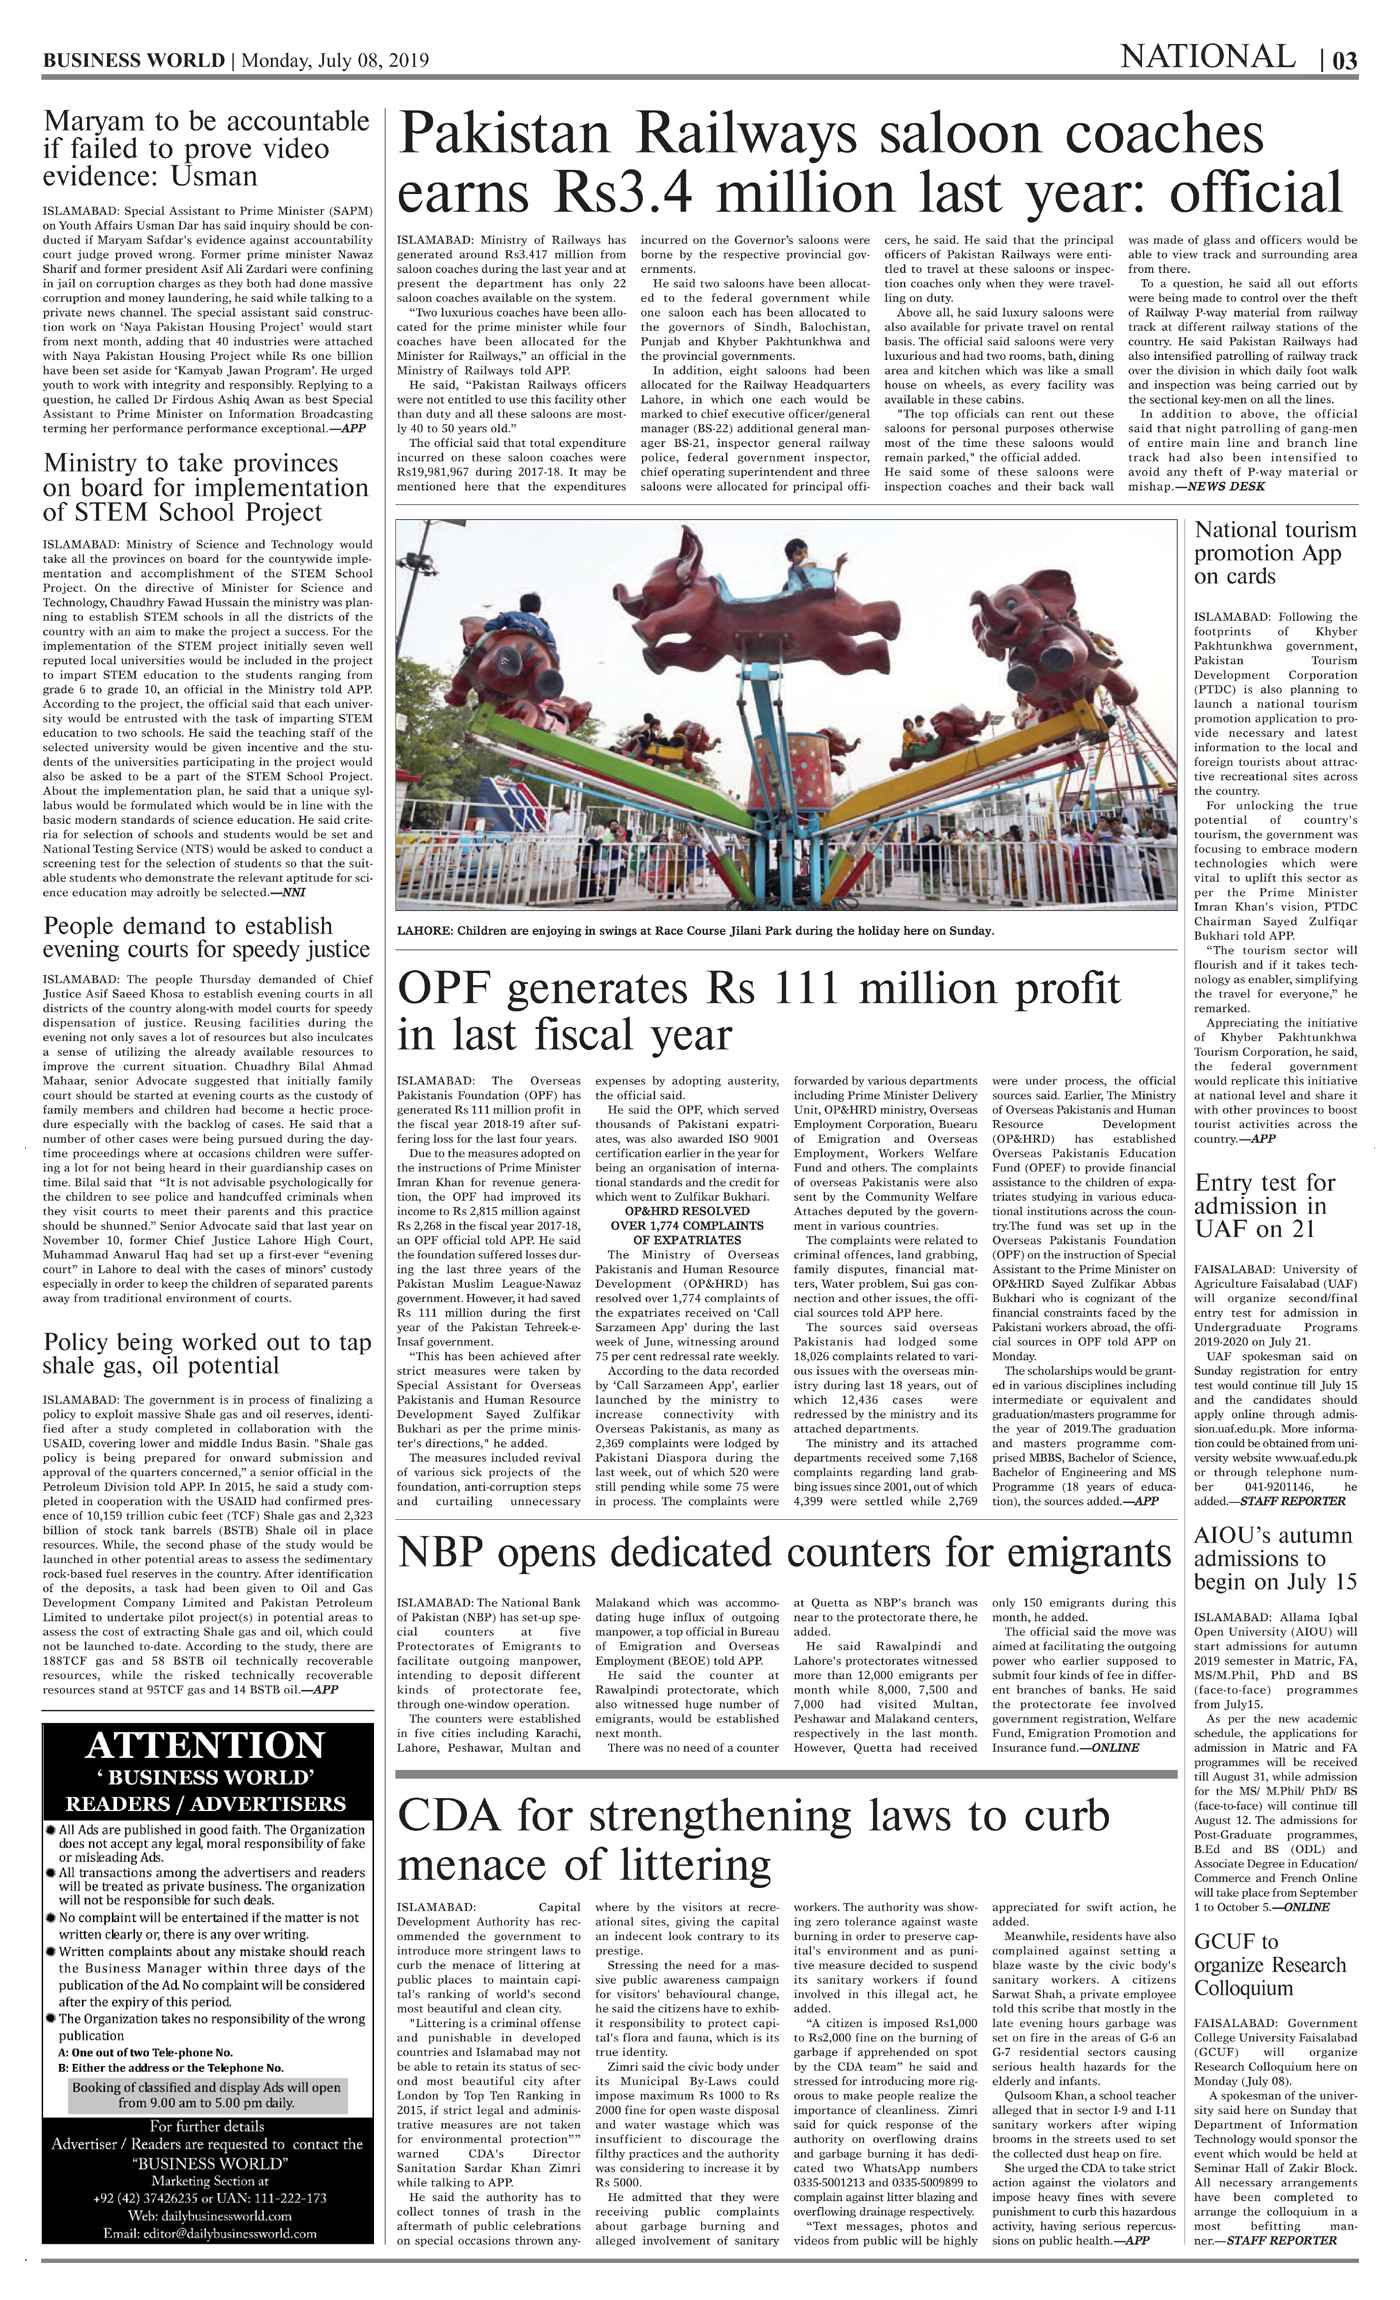 Daily Business World E-Paper 8th July 2019 - Daily Business